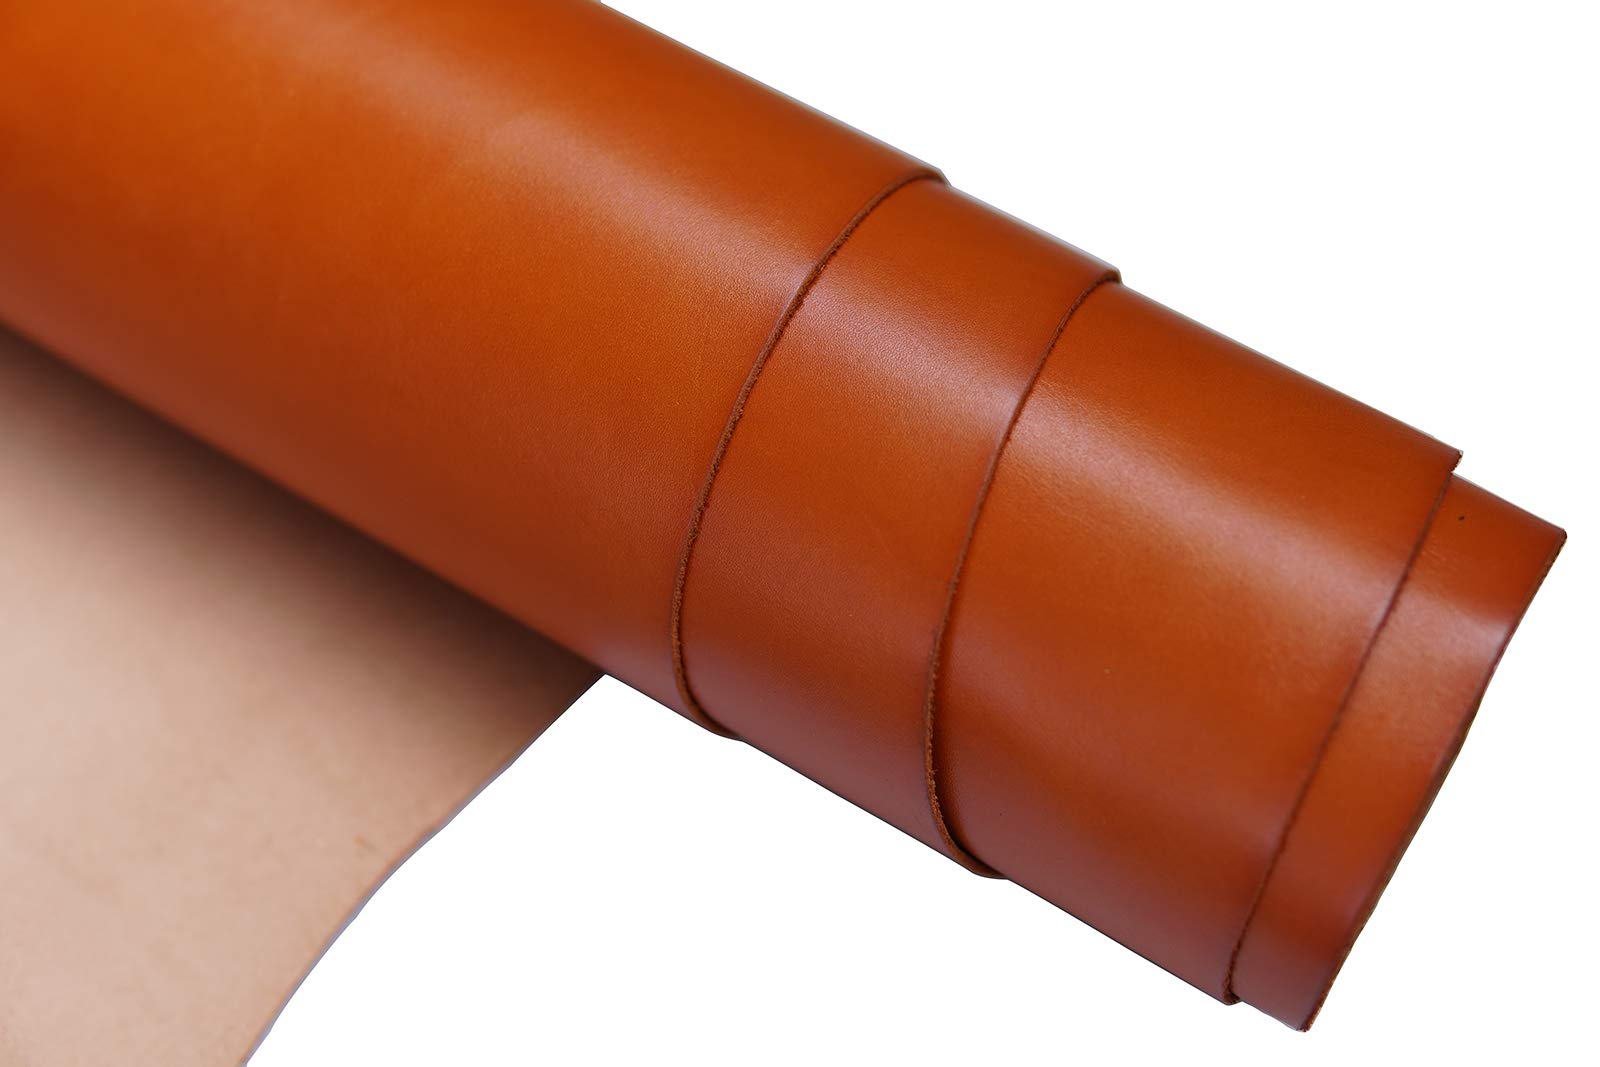 Firm Vegetable Tanned Full Grain Tooling Leather Thick Cowhide Handmade Stiff Leather Material for Craft/Tooling/Caving/Hobby Workshop (Orange-2.0mm, 24x24inches)